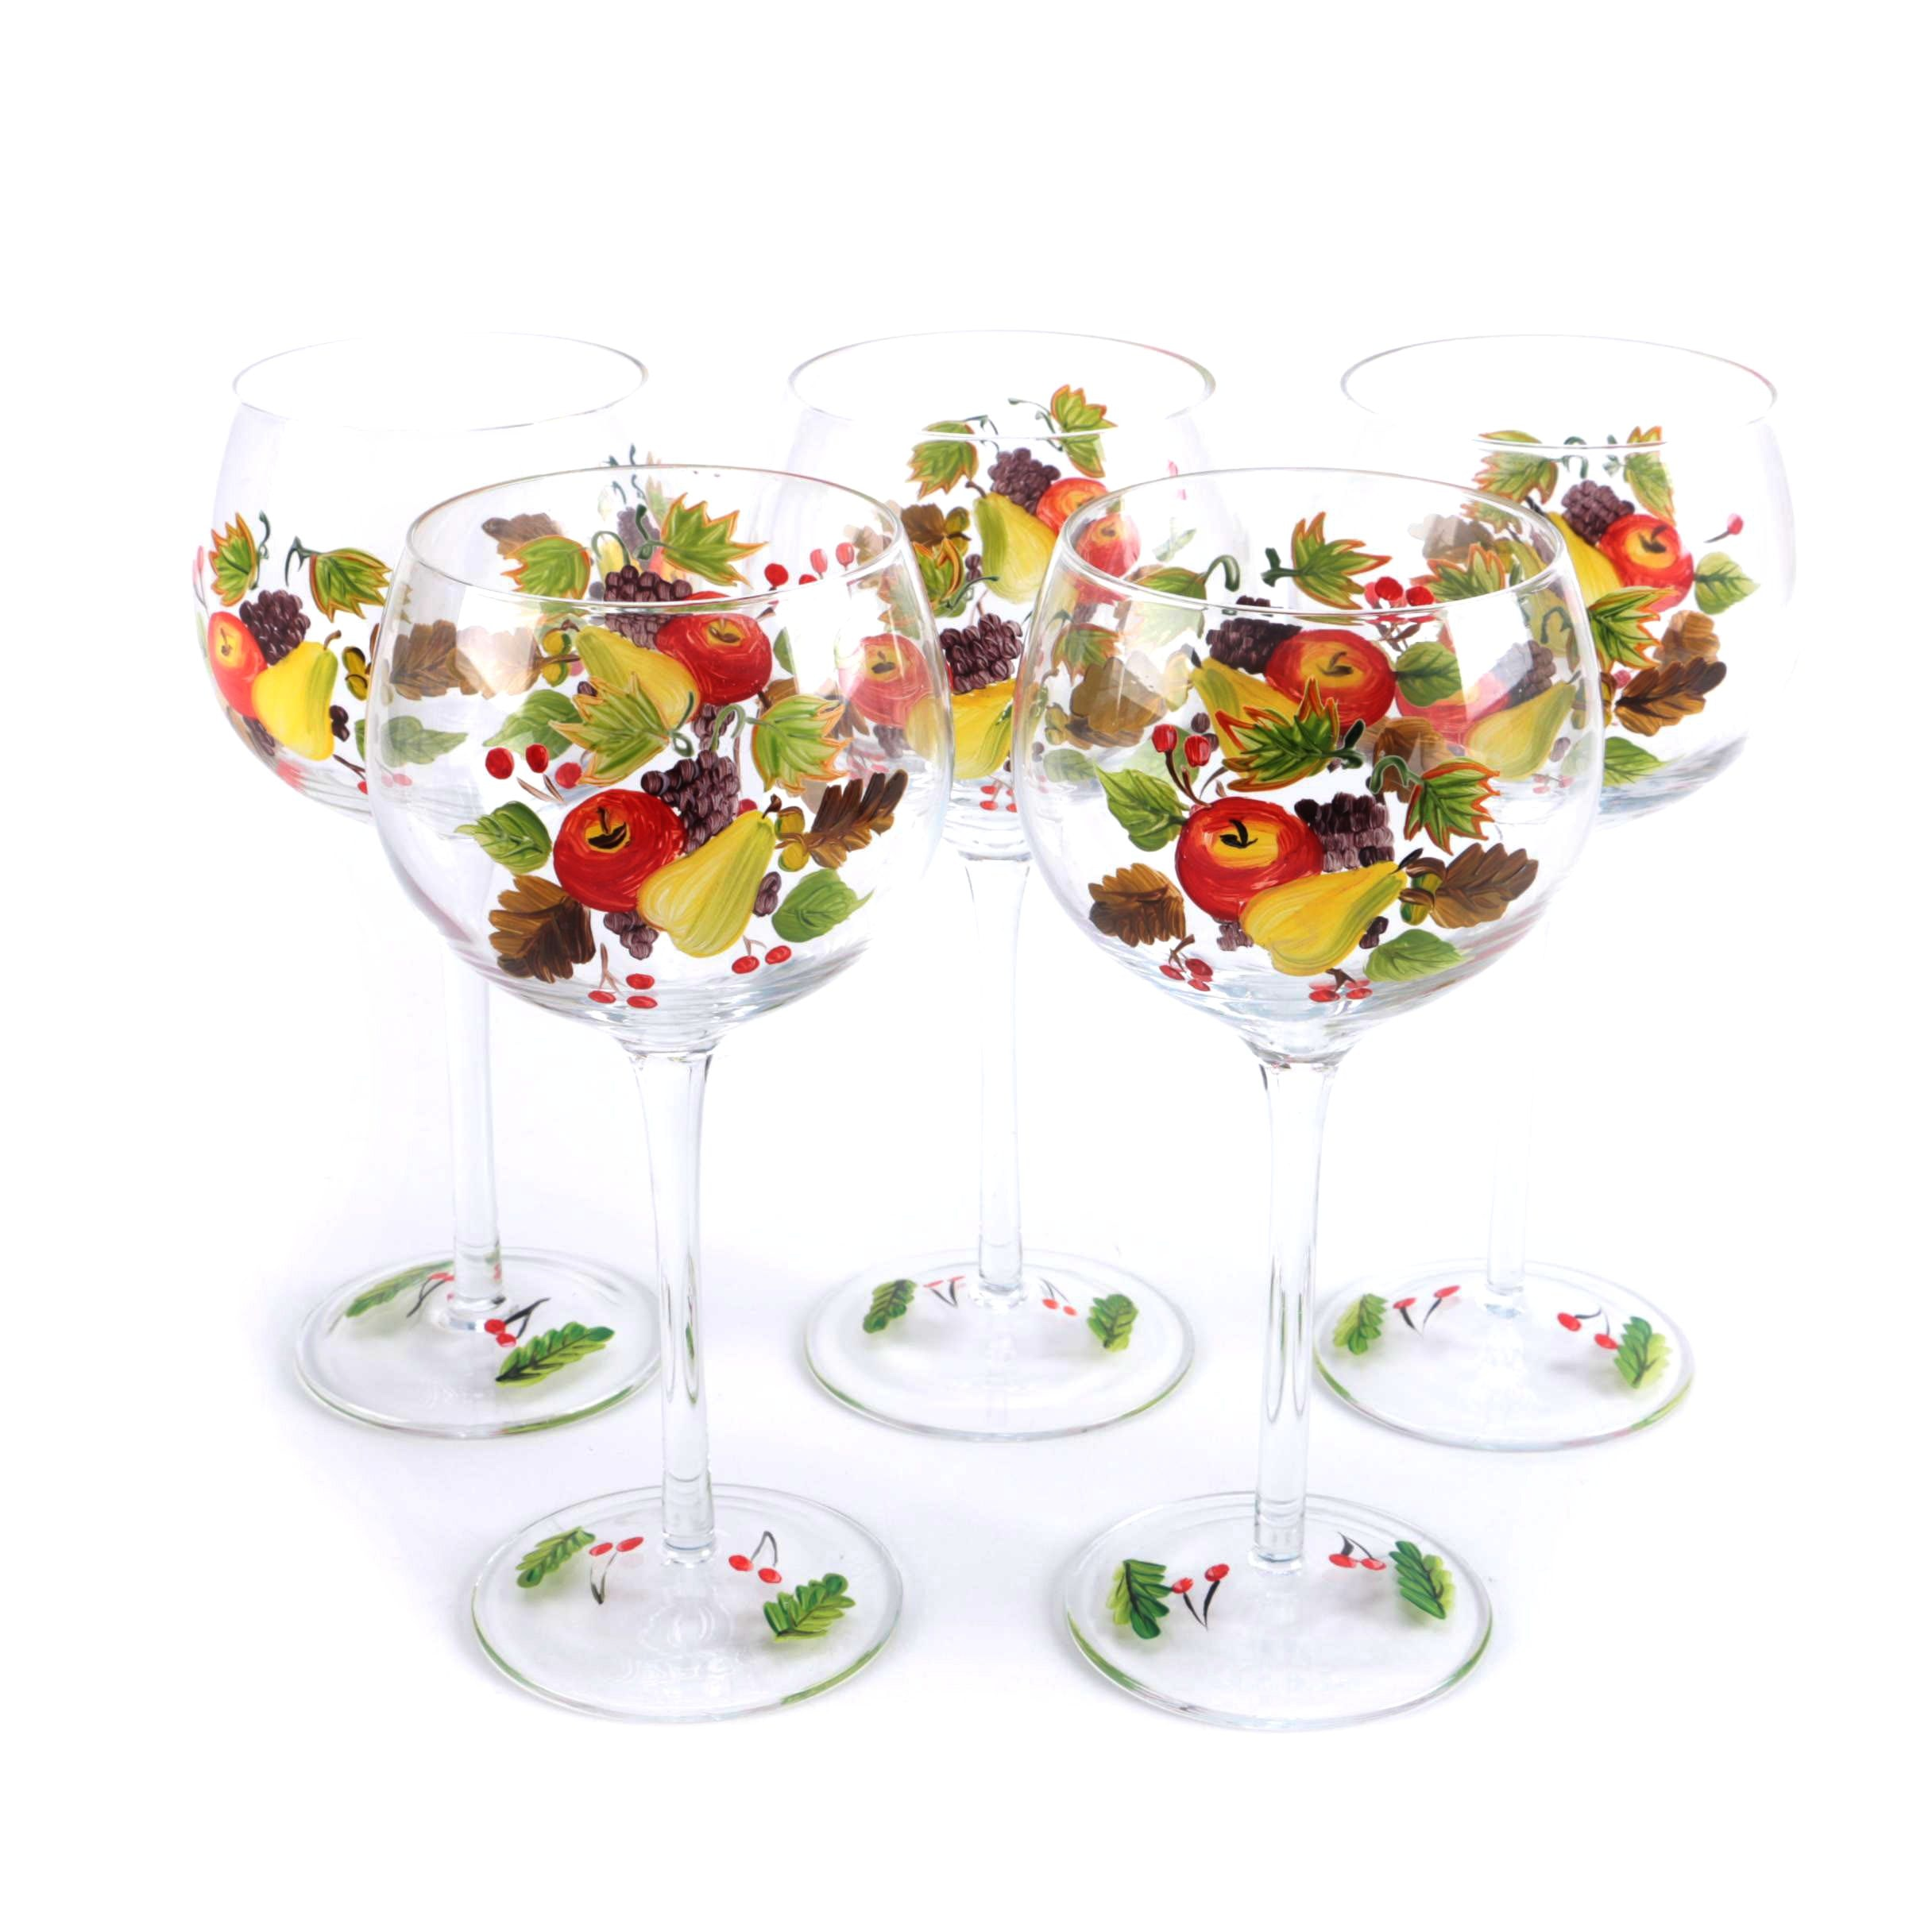 Red Wine Glasses With Painted Fruit Designs